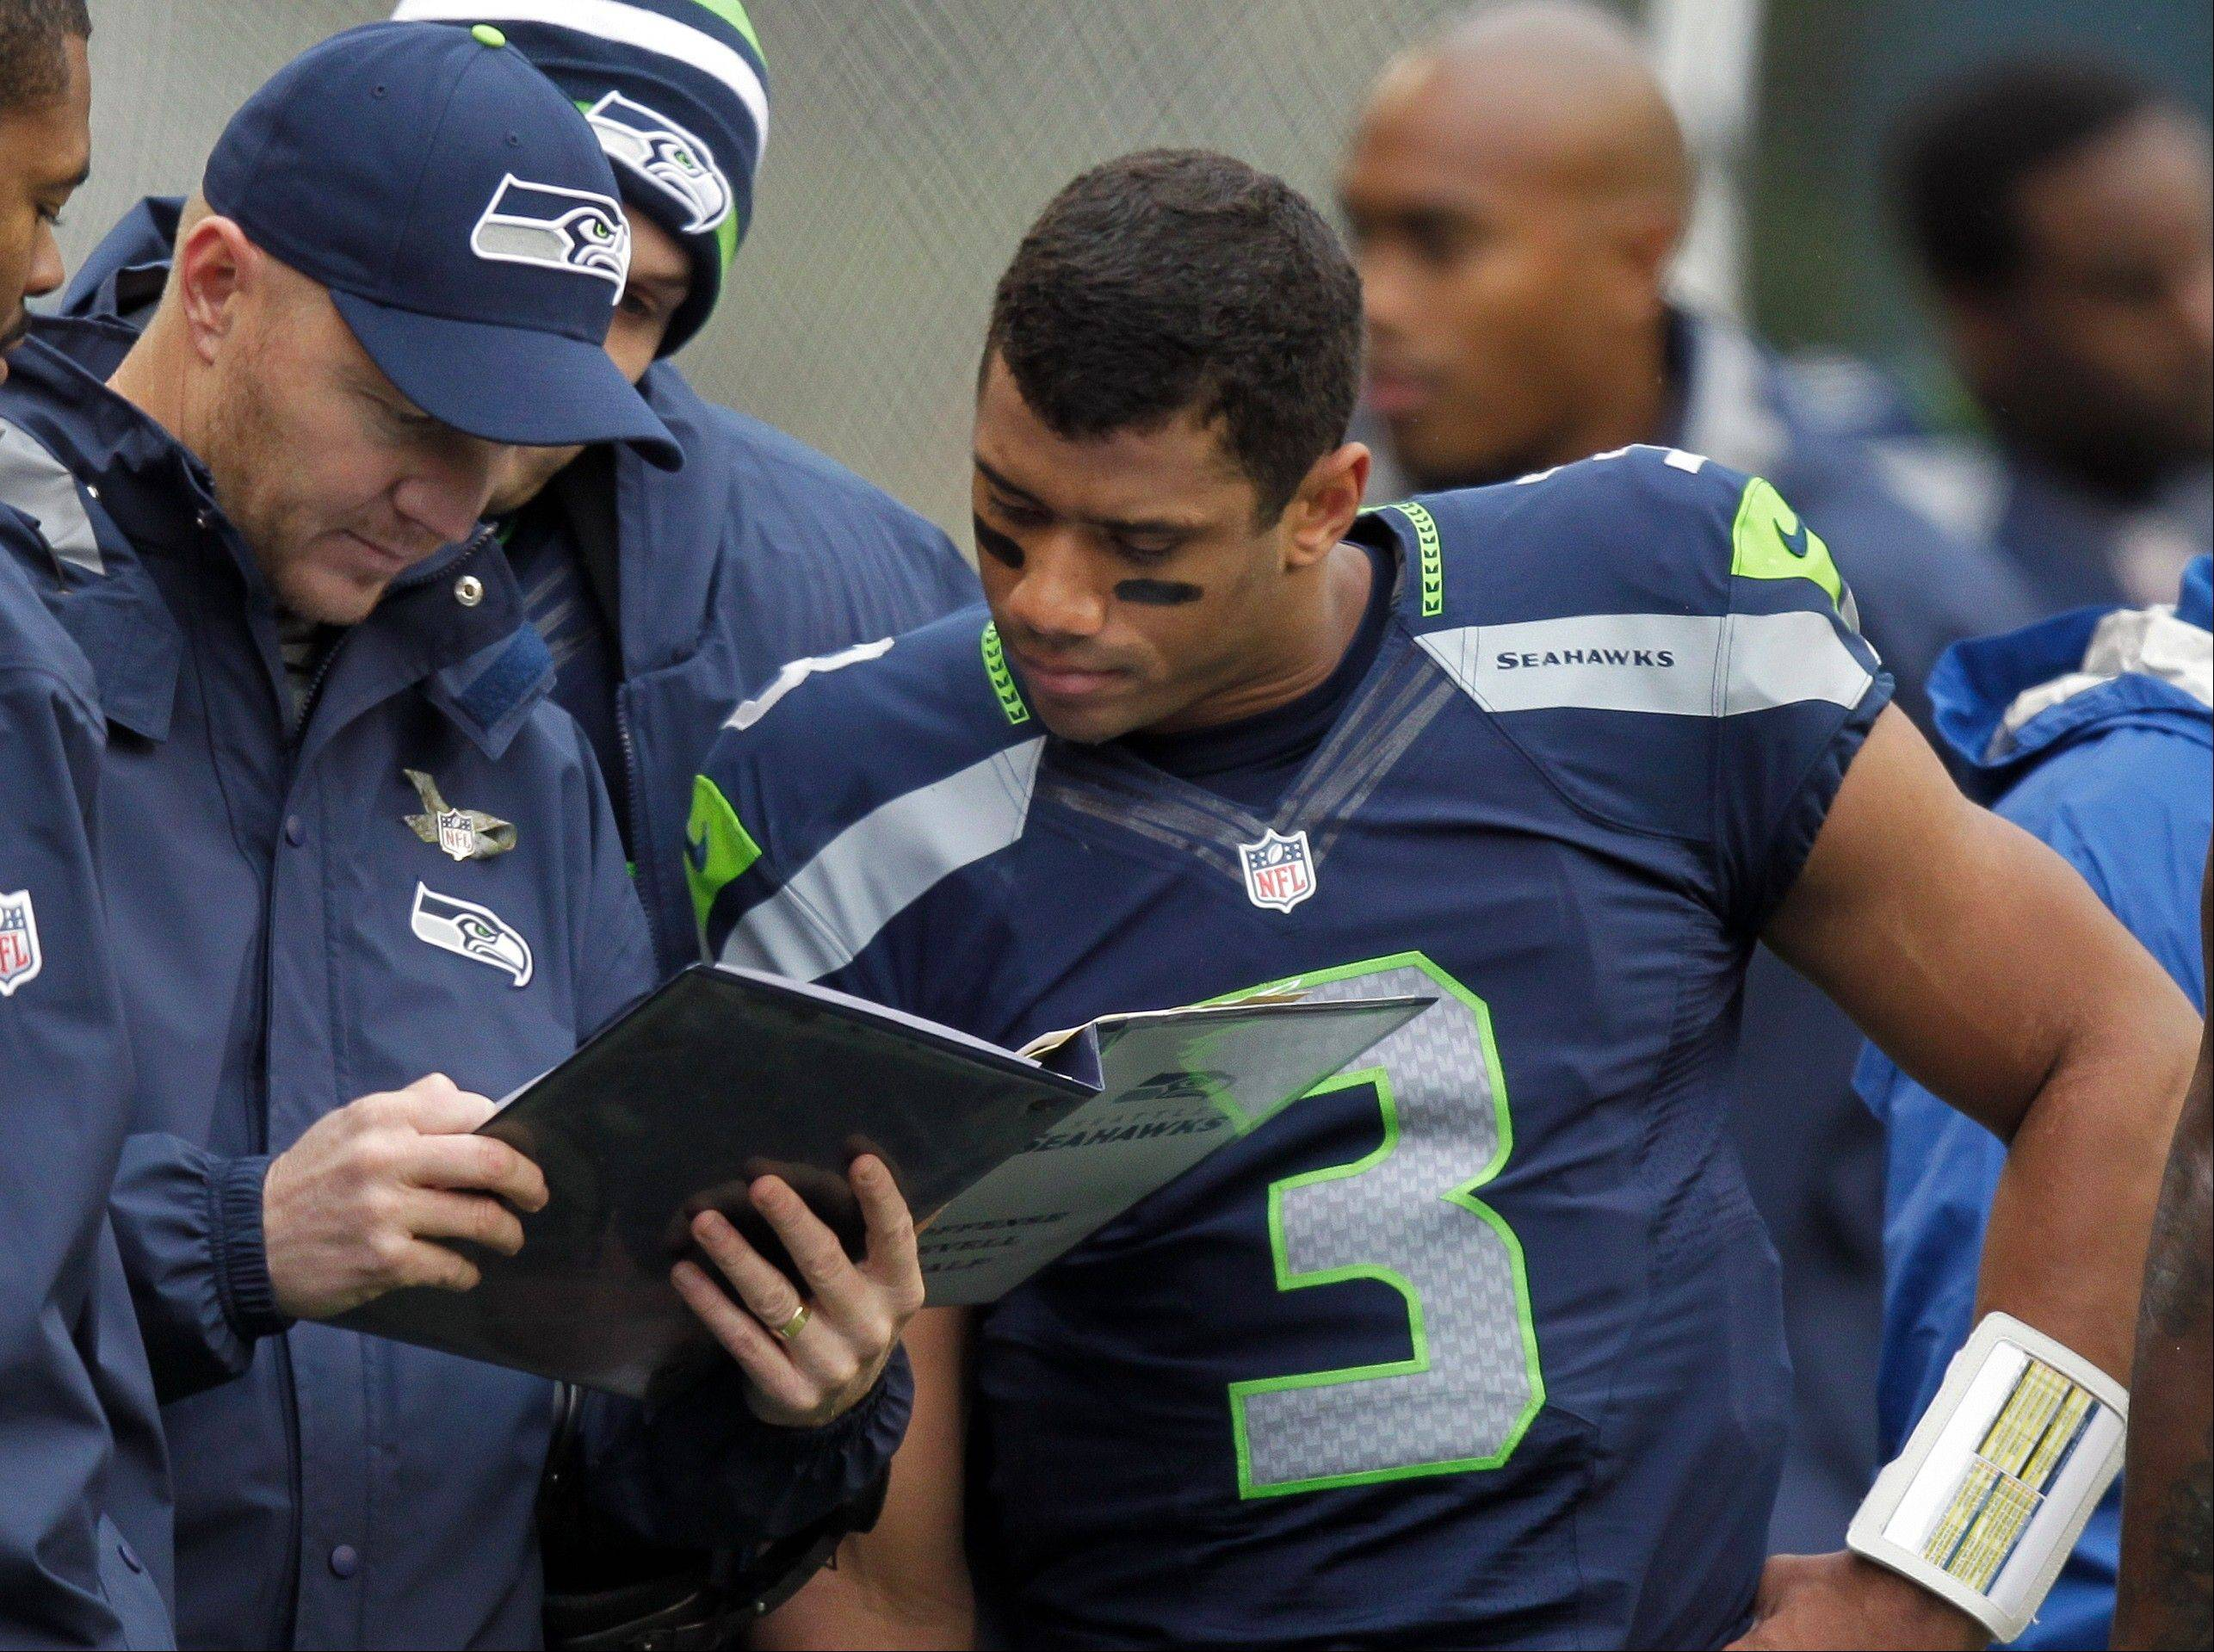 Seattle Seahawks quarterback Russell Wilson, right, looks at a playbook with offensive coordinator Darrell Bevell, left, on the sidelines during the first half of an NFL football game against the New York Jets in Seattle.